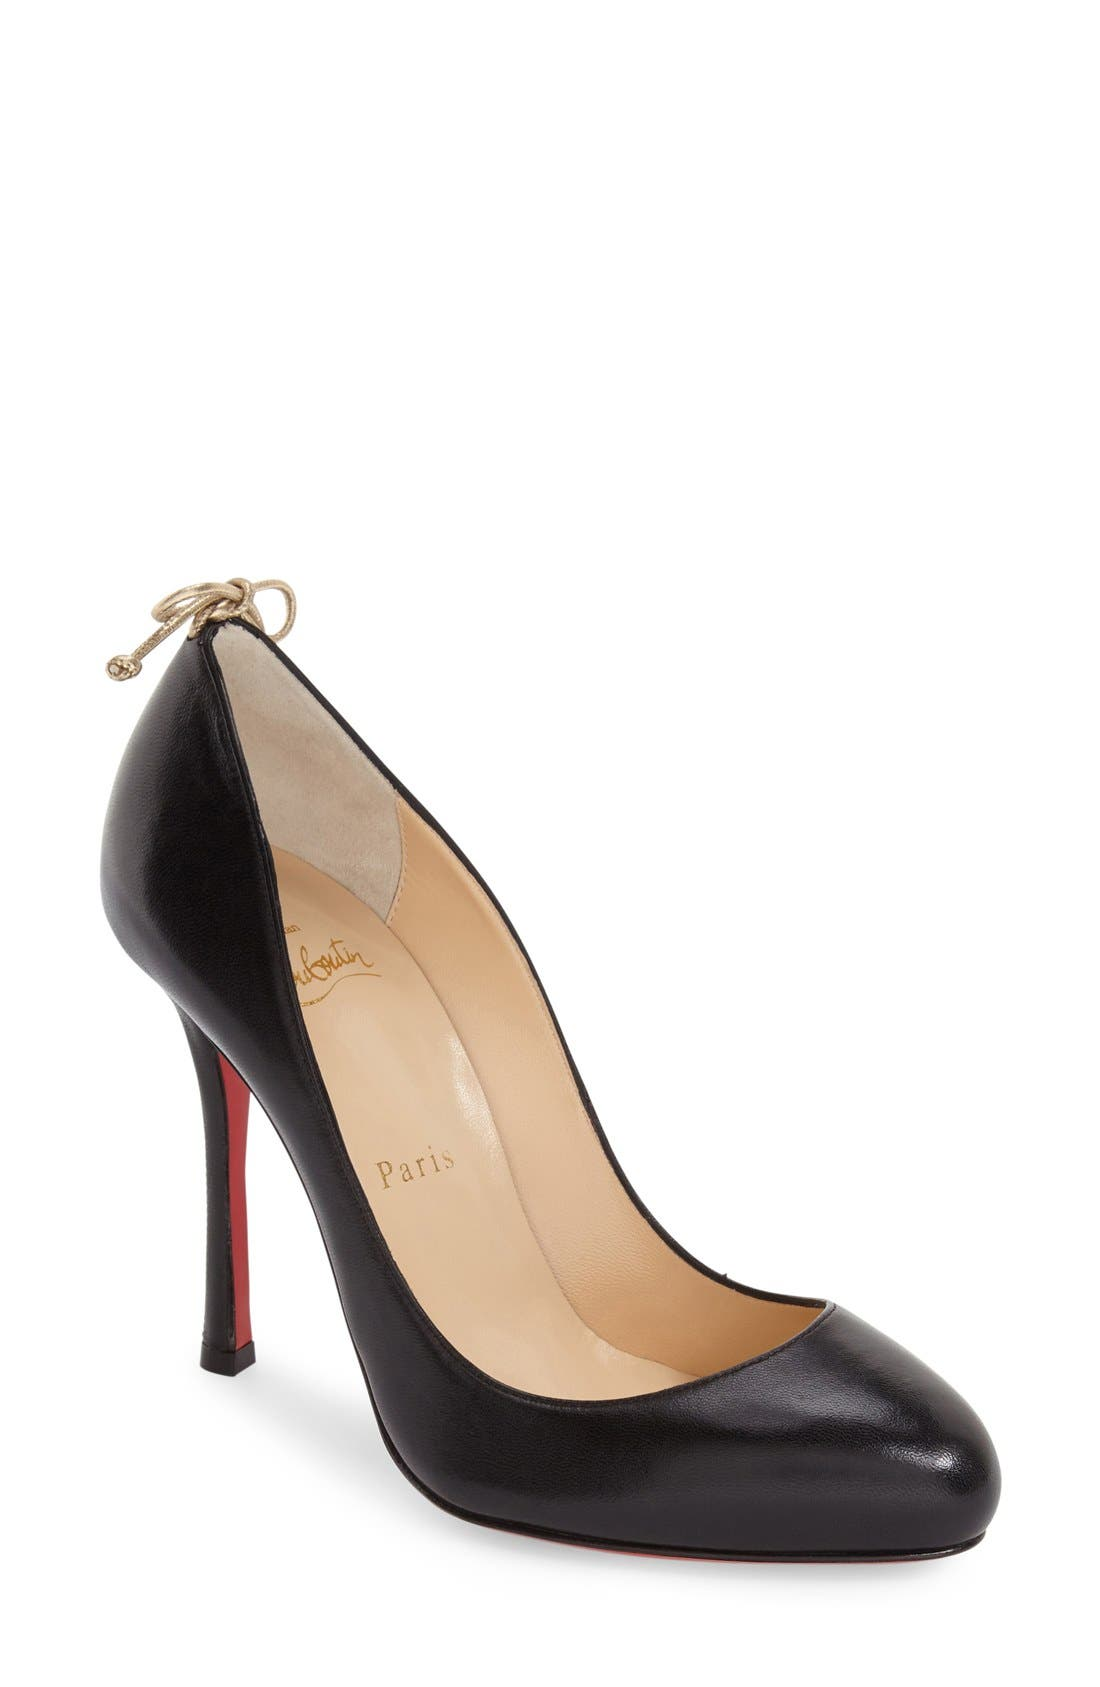 Alternate Image 1 Selected - Christian Louboutin 'Very Gemma' Bow Pump